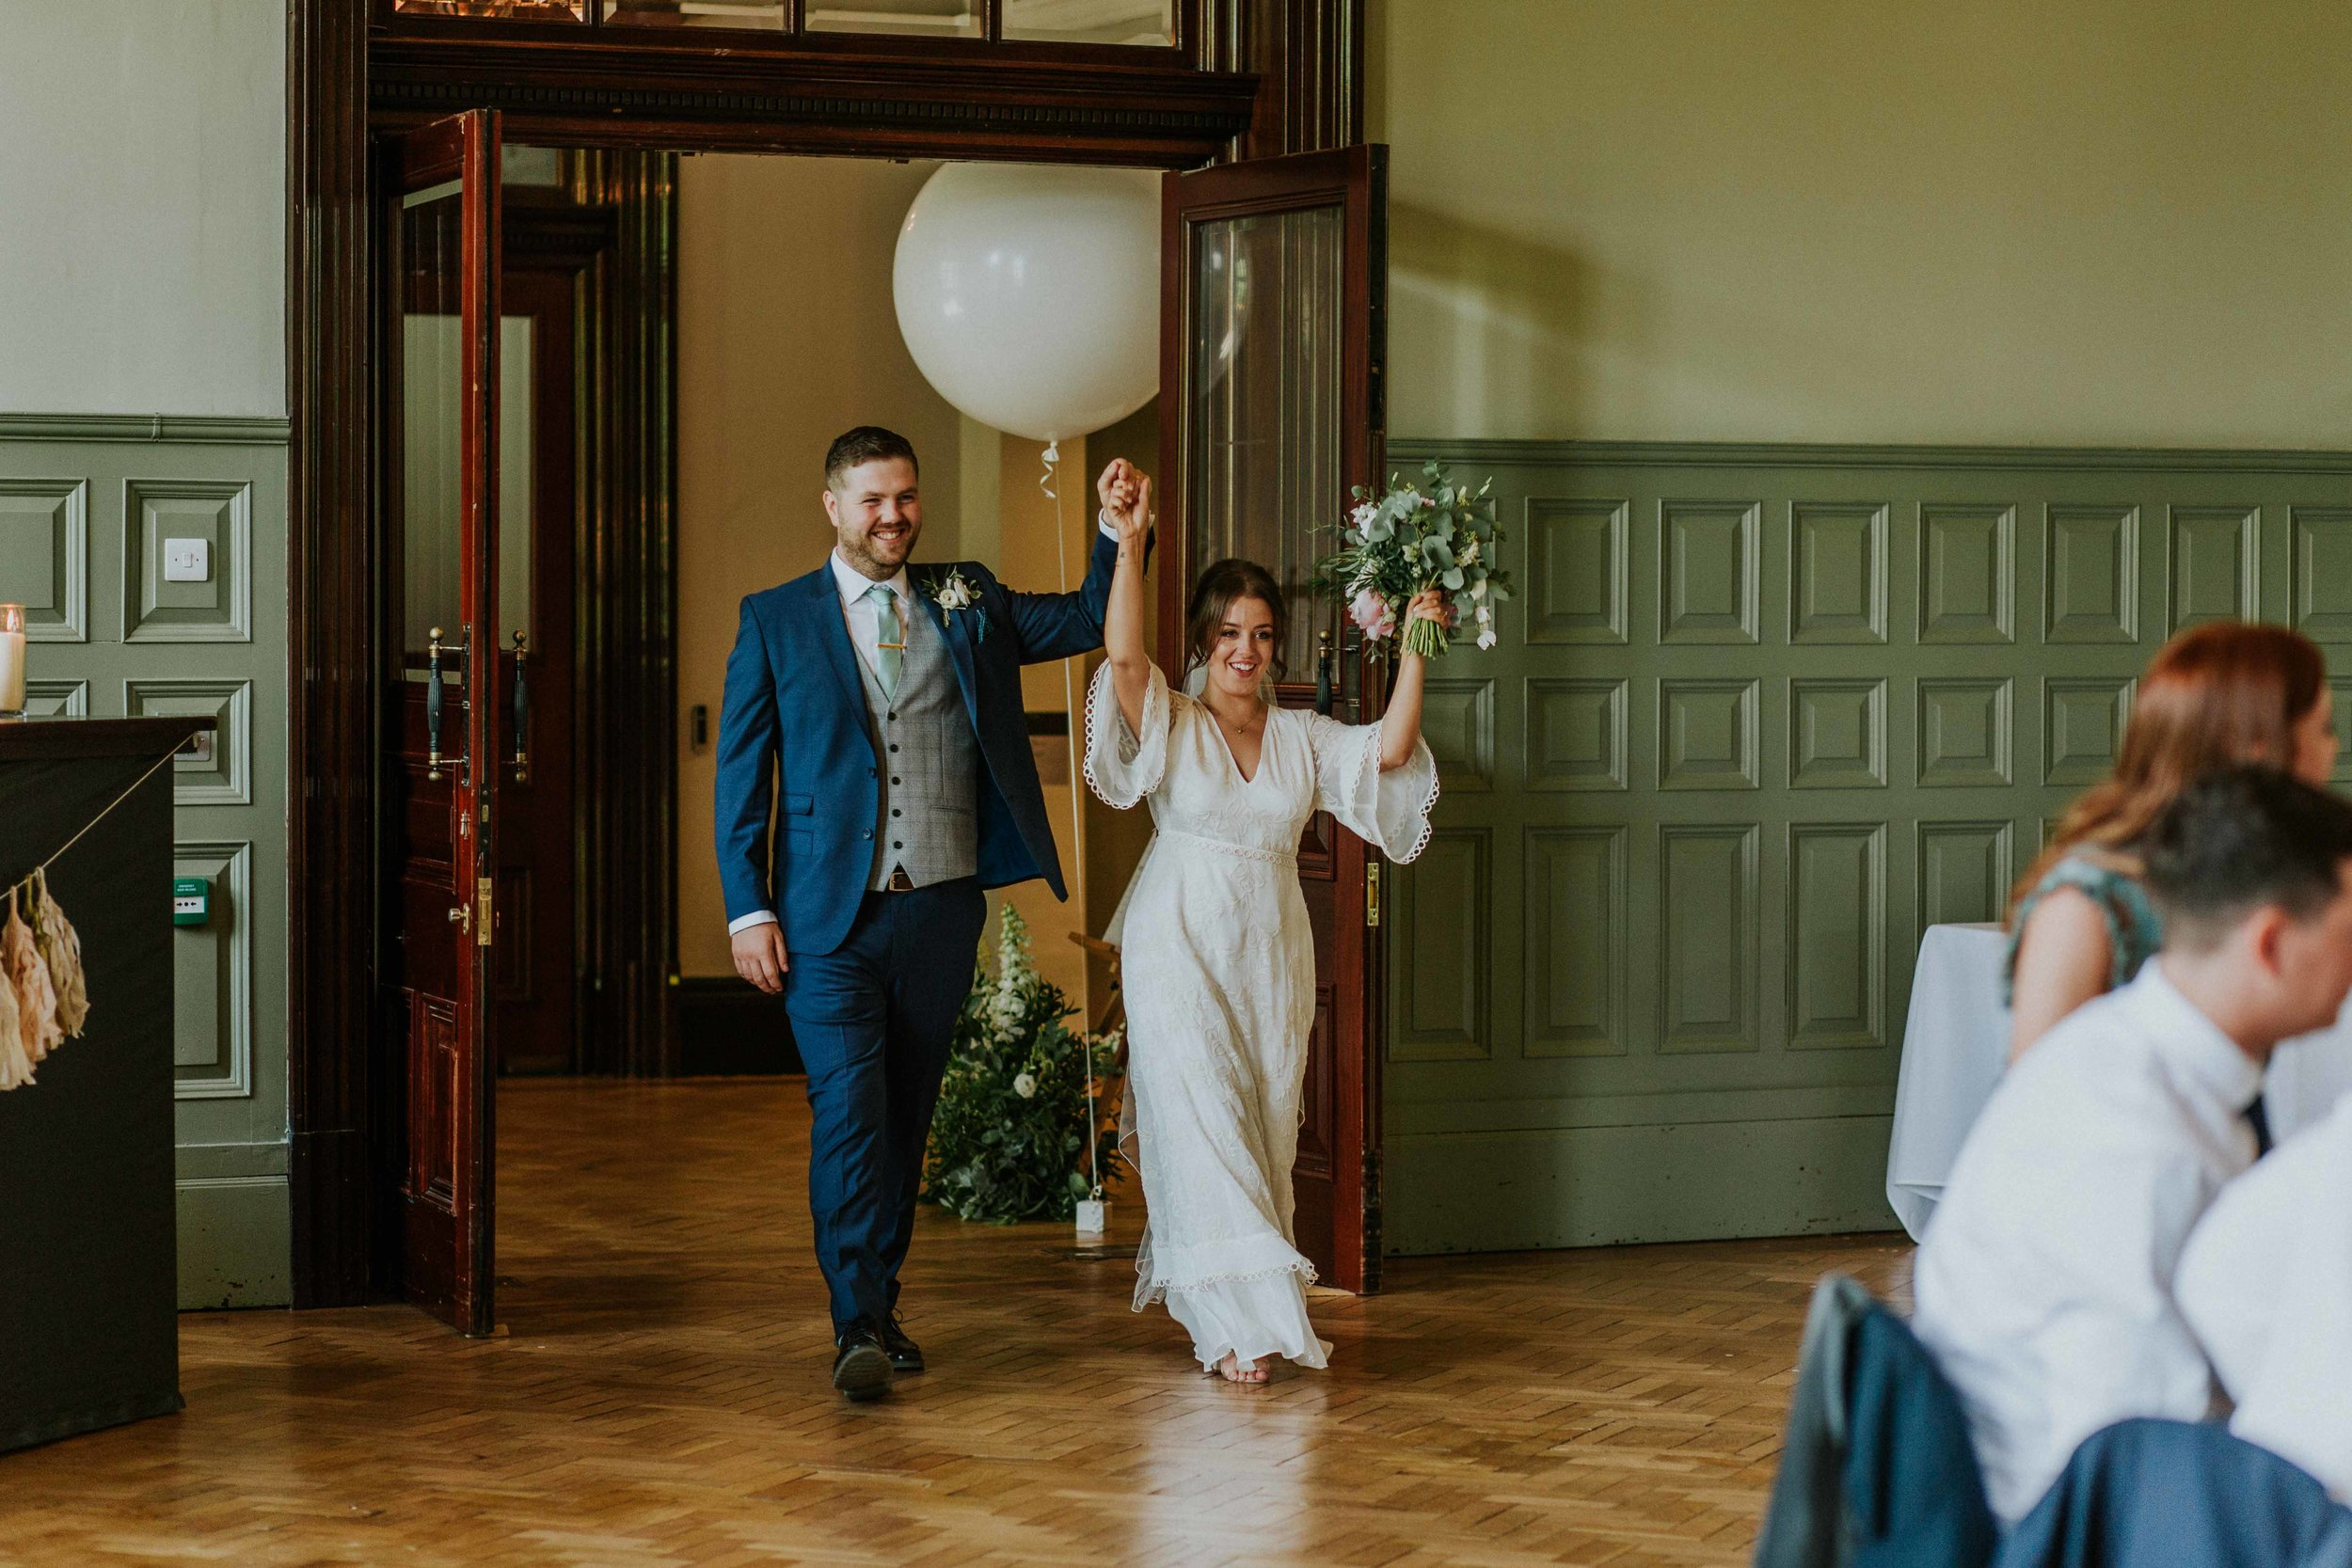 bride and groom walking into wedding venue at The Whitworth